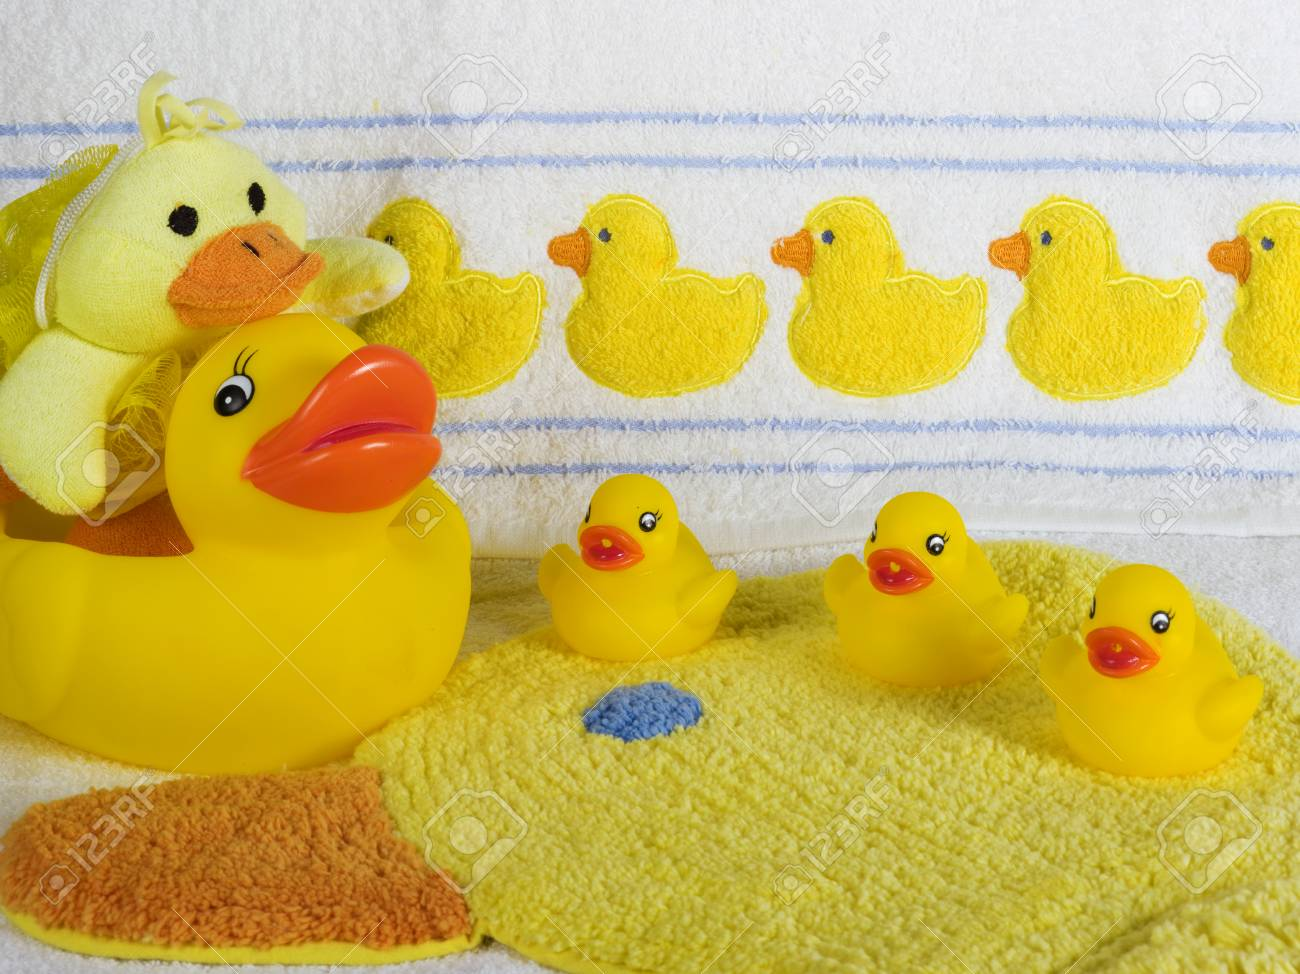 Rubber Duck Bathroom Set Stock Photo, Picture And Royalty Free Image on jungle bathroom set, ralph lauren bathroom set, under the sea bathroom set, black bathroom set, dragonfly bathroom set, dolphin bathroom set, gucci bathroom set, lacoste bathroom set, rubber duck sayings, bathtub bathroom set, john deere bathroom set, spiderman bathroom set, star wars bathroom set, elephant bathroom set, batman bathroom set, fashion bathroom set, angel bathroom set, fish bathroom set, golf bathroom set, bear bathroom set,